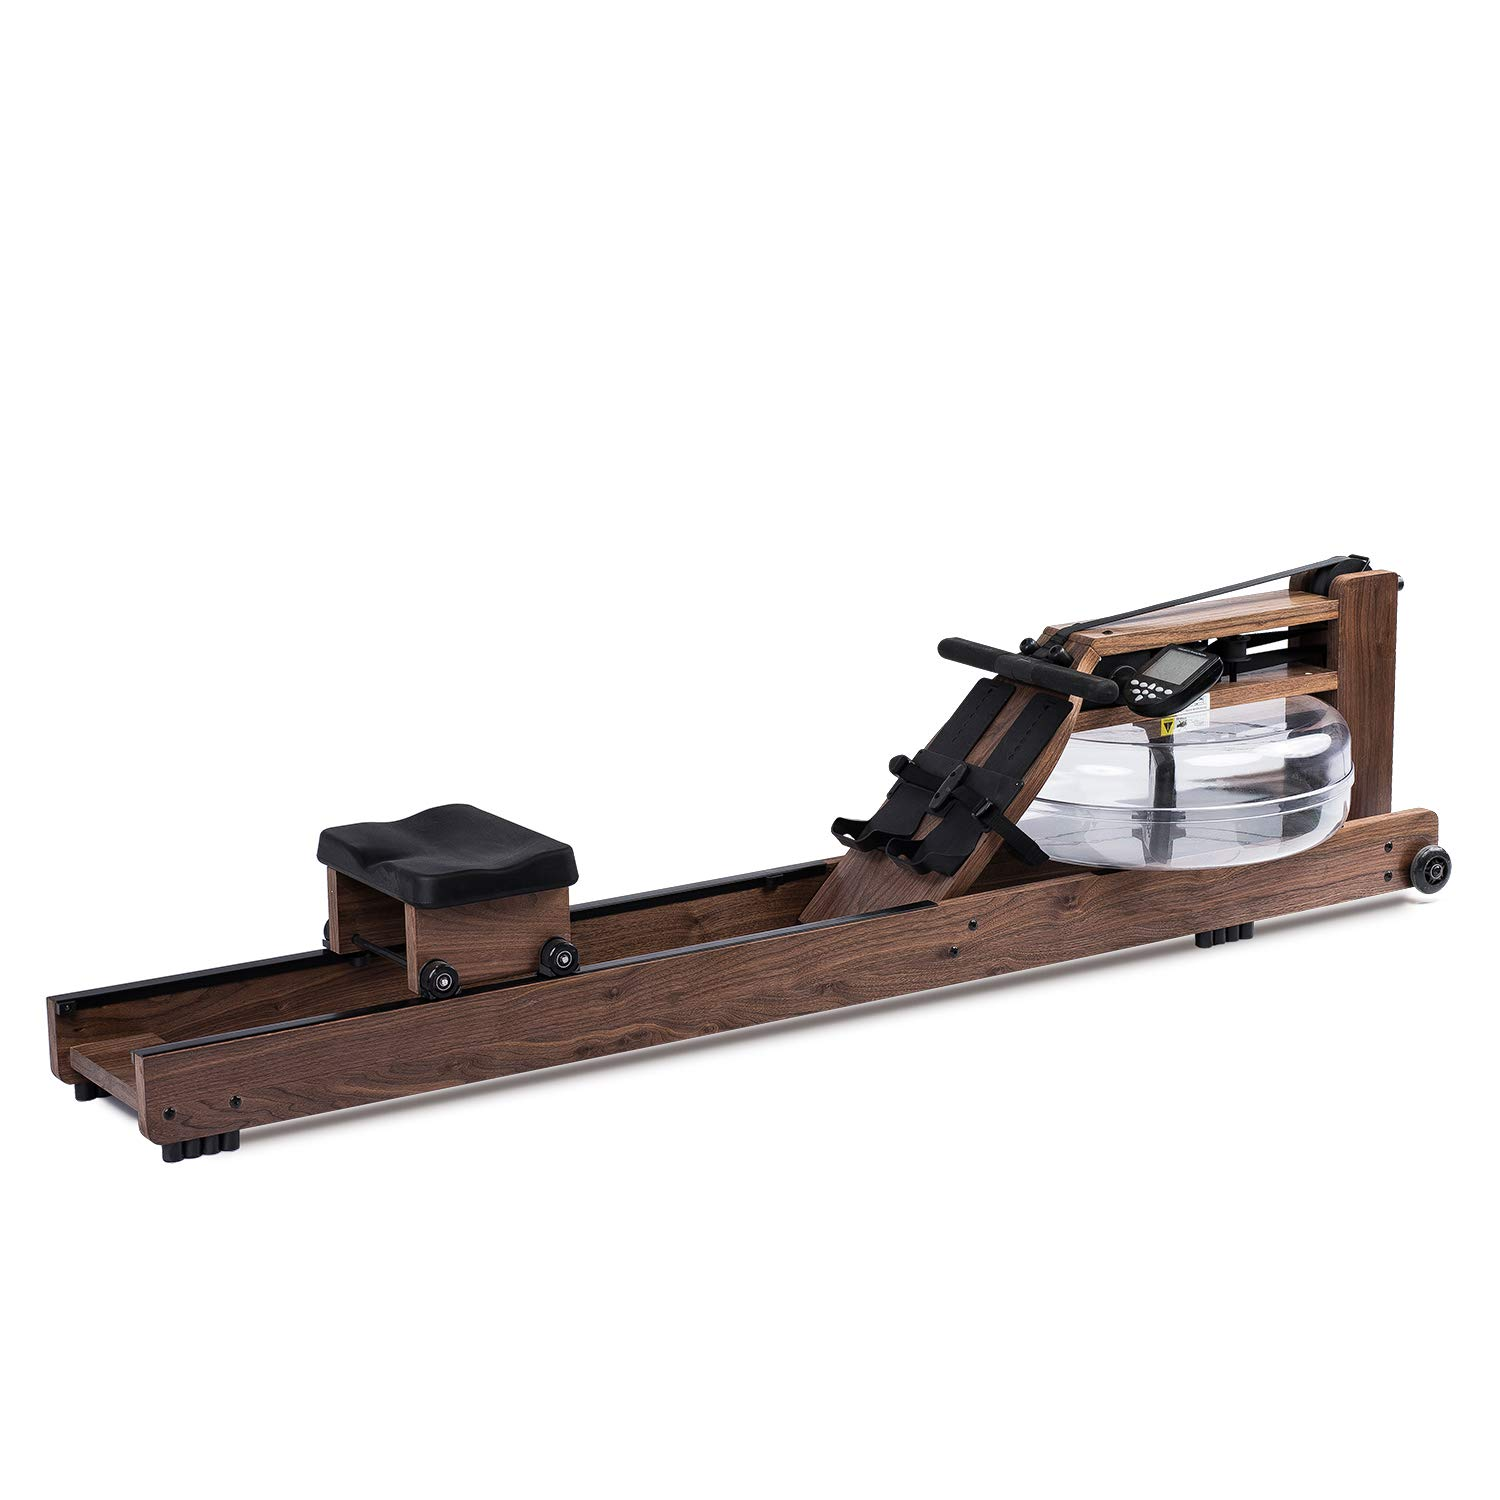 Eriding Rowing Machine Wood Water Rower with Monitor Black Walnut